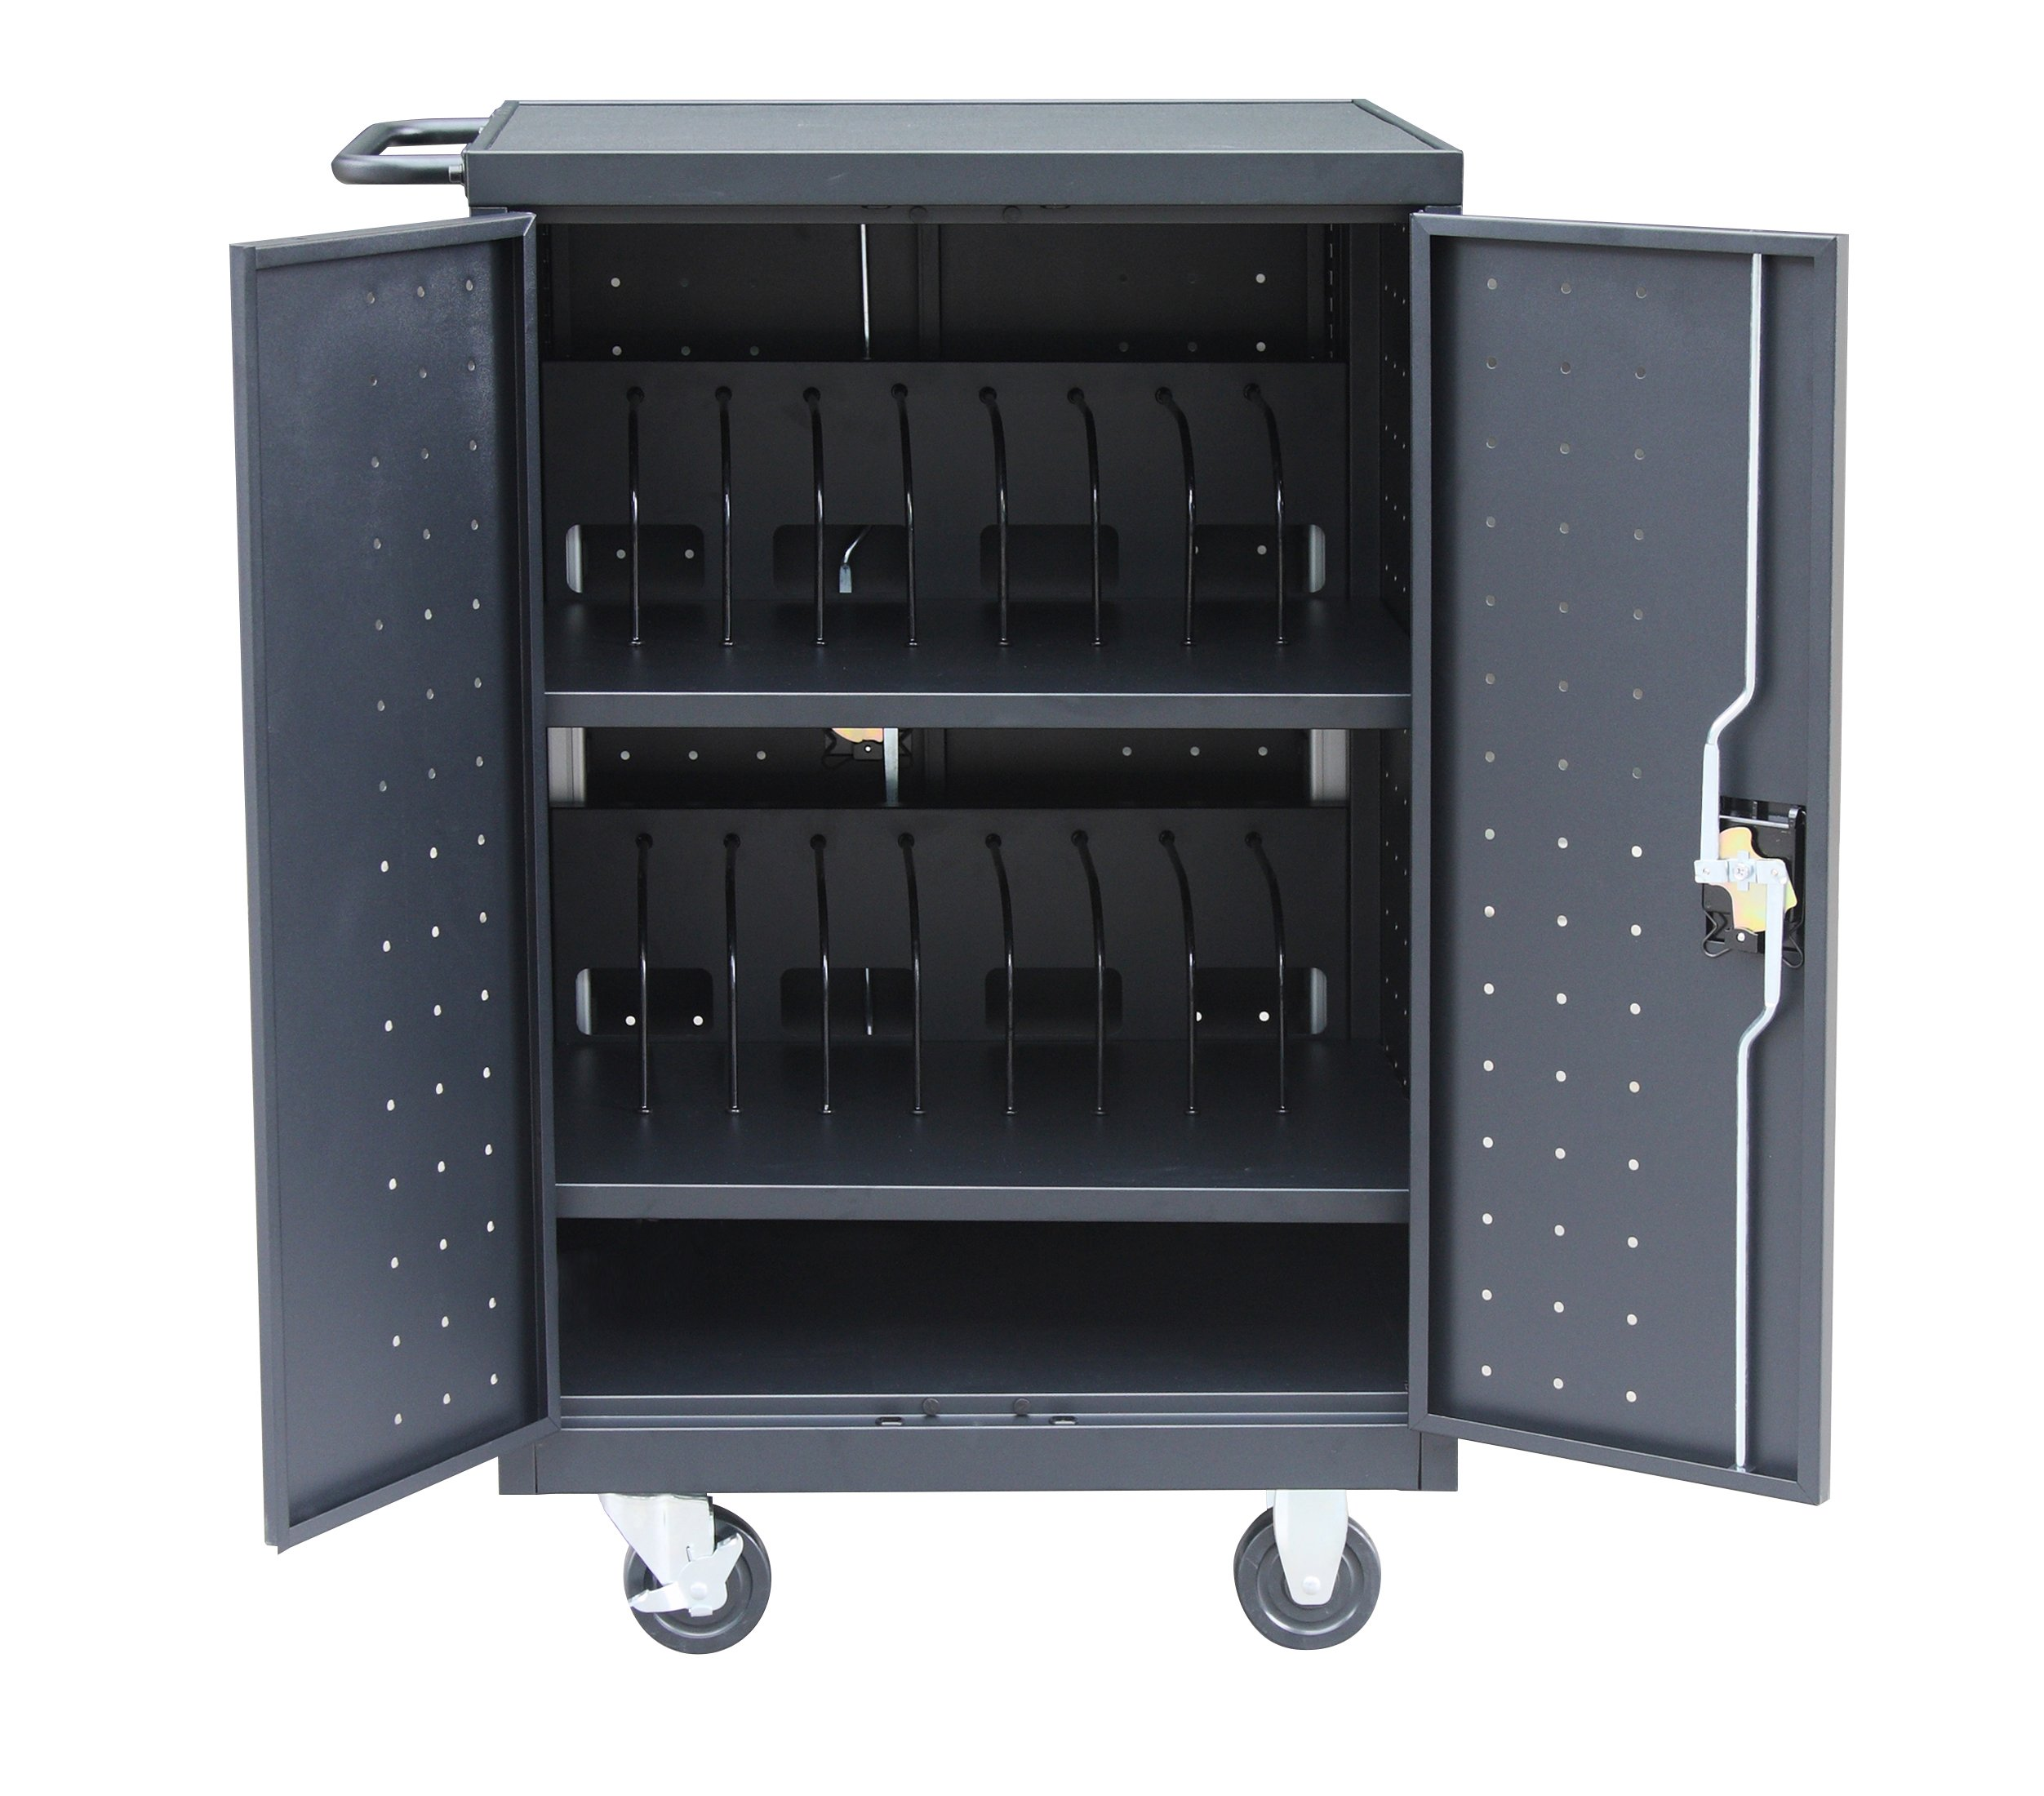 Pearington 18TABLET-01 18 Bay Tablet and Computer Charging Cart, 40'' Height, 21'' Wide, 25.7'' Length, Black